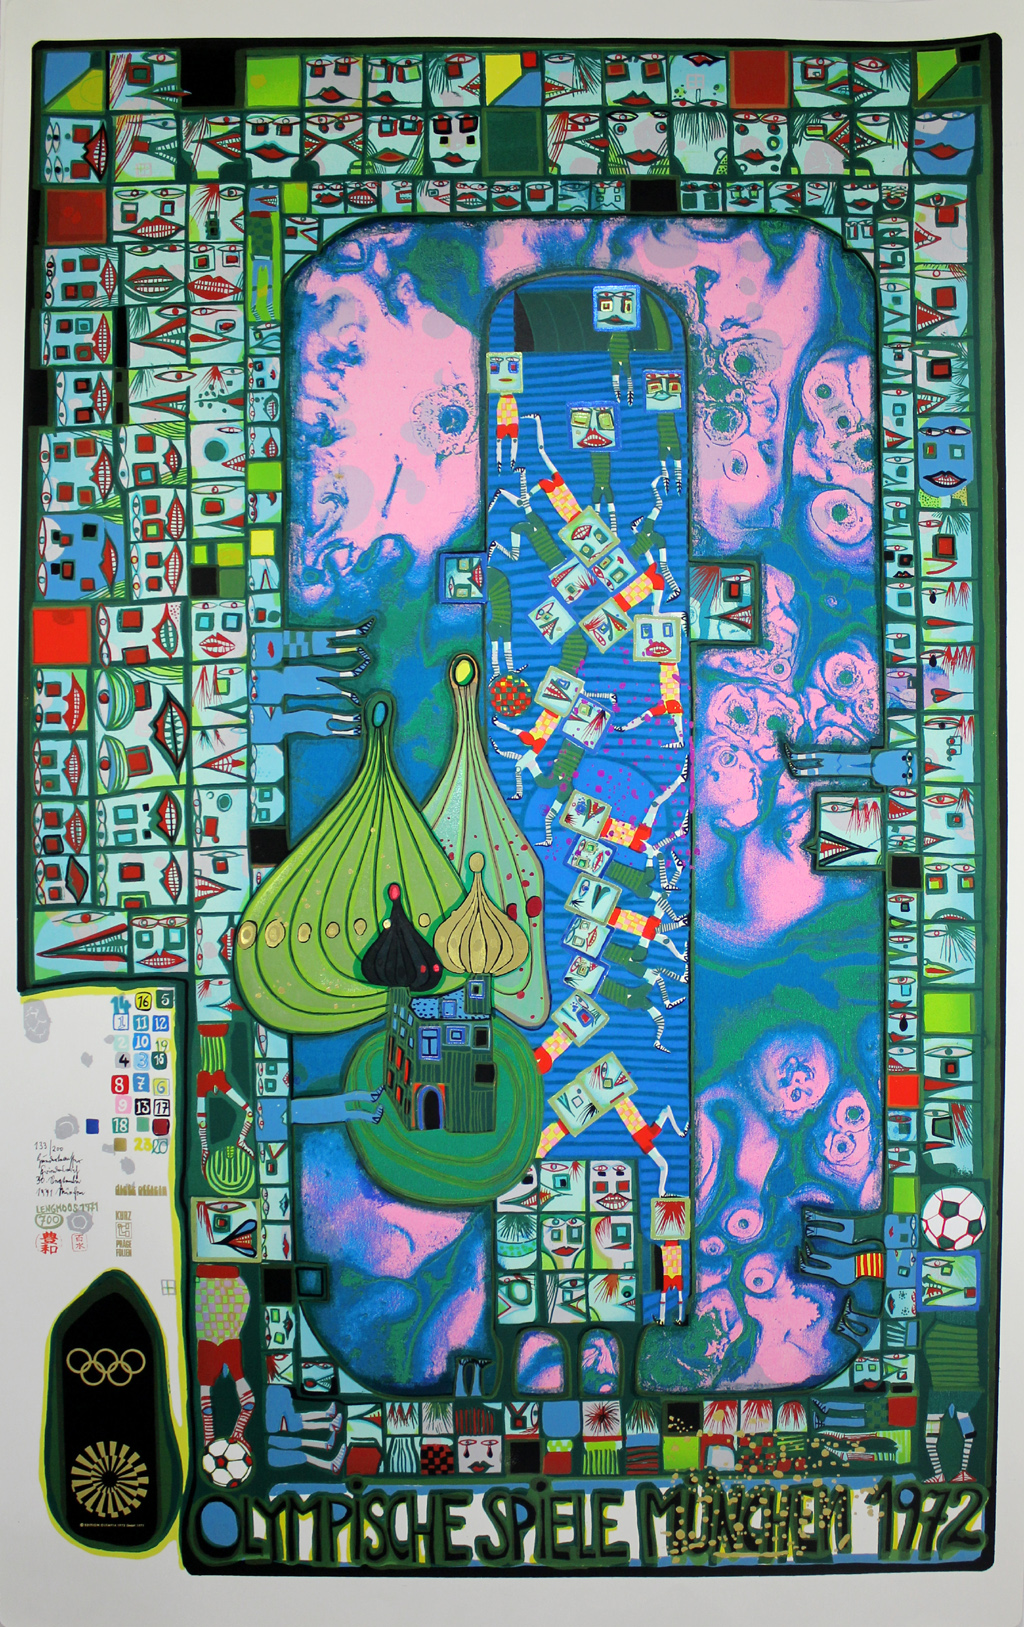 friedensreich hundertwasser olympische spiele m nchen 1972 handsigniert num ebay. Black Bedroom Furniture Sets. Home Design Ideas